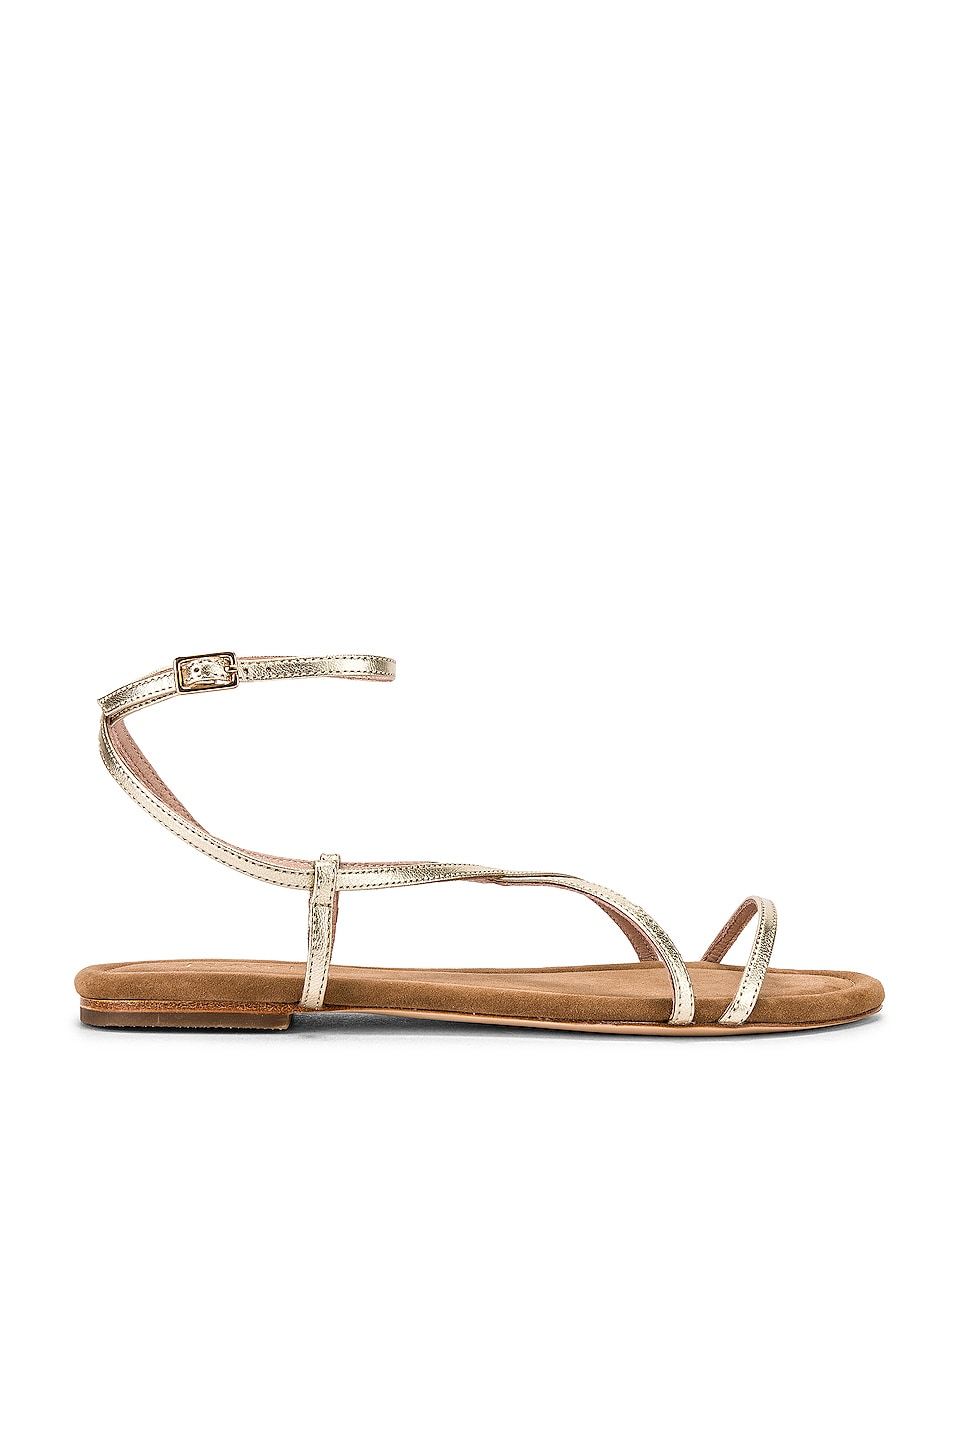 RAYE Clay Sandal in Pale Gold